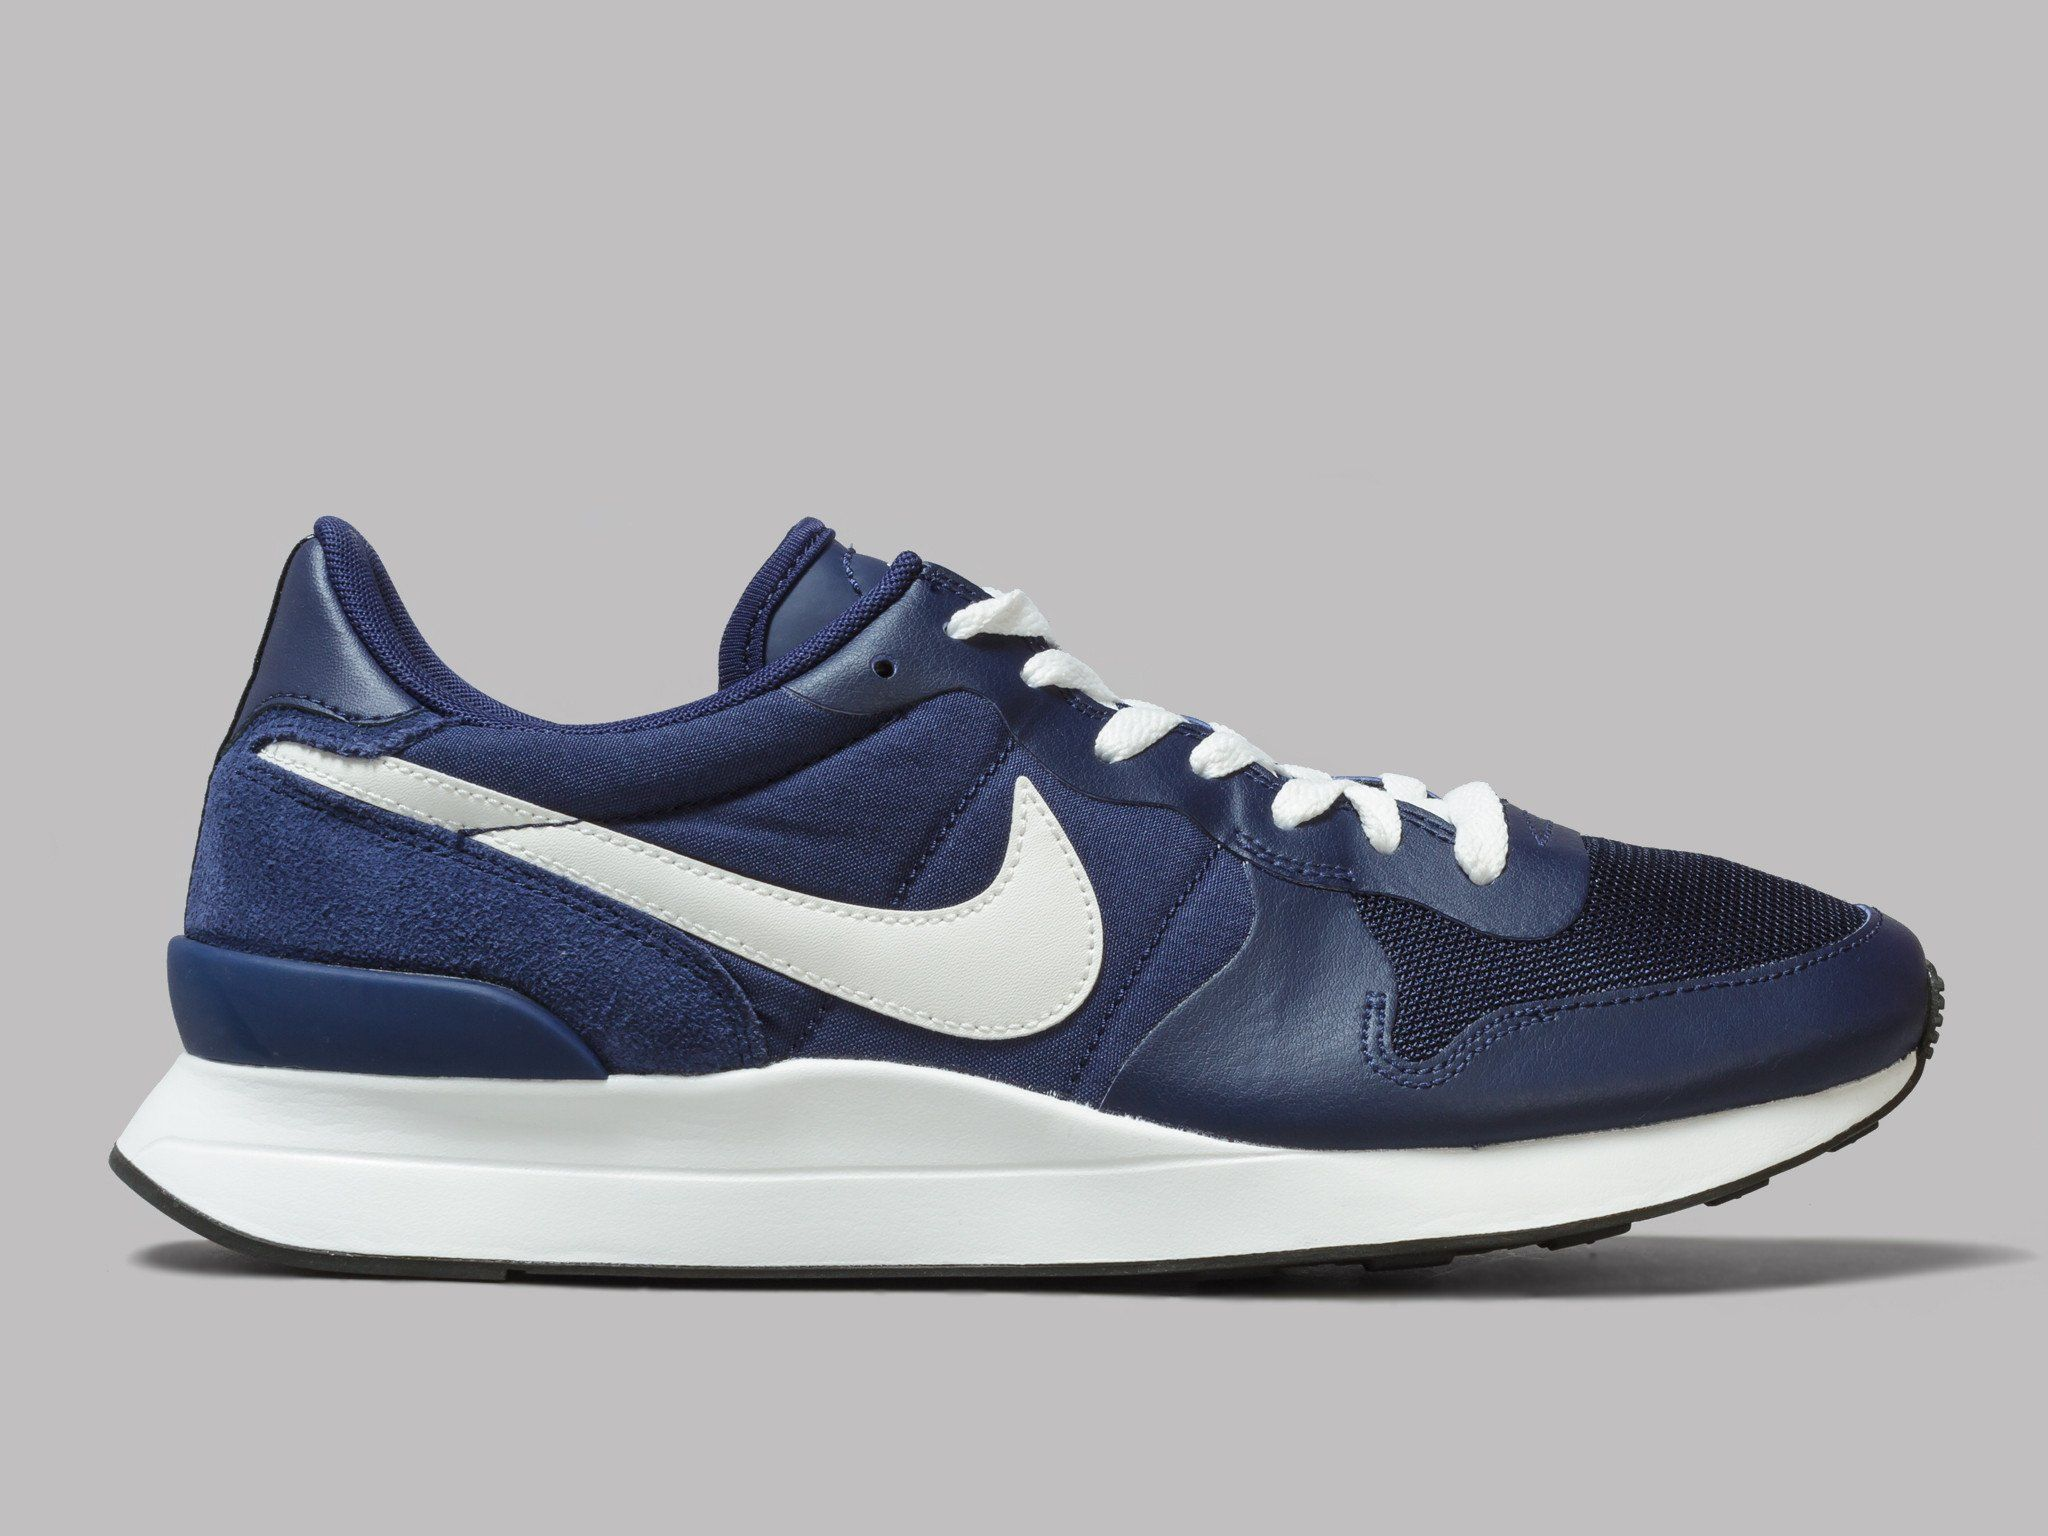 d2f0ebc6e60 Nike Internationalist Lt17 (Binary Blue / Summit White / Pure Platinum)